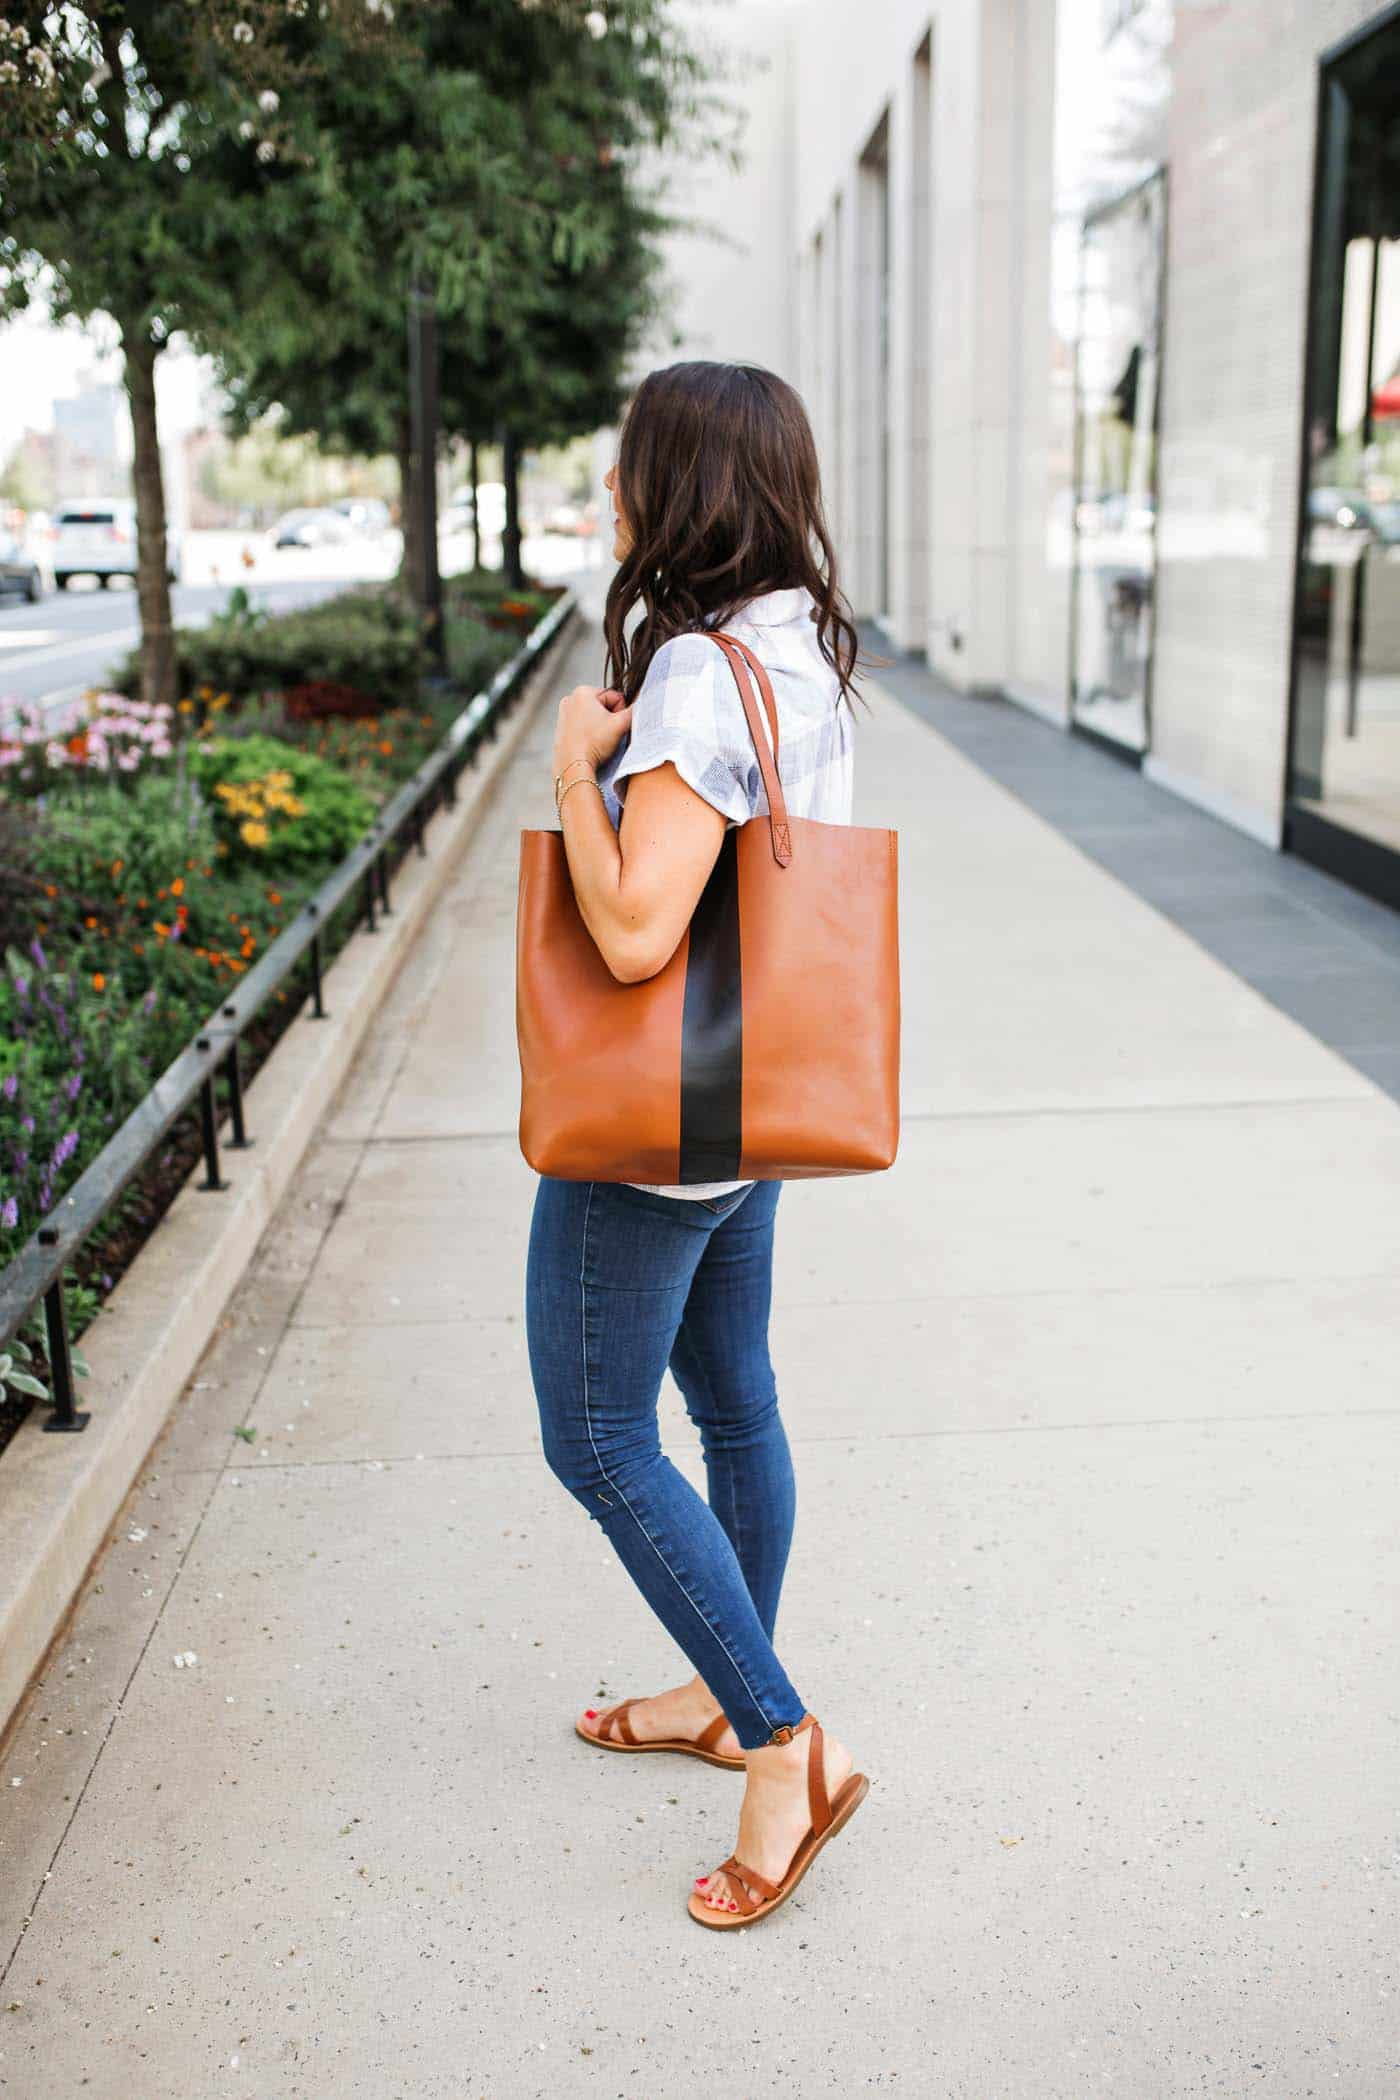 Jessica Camerata reviews the Madewell Transport Tote